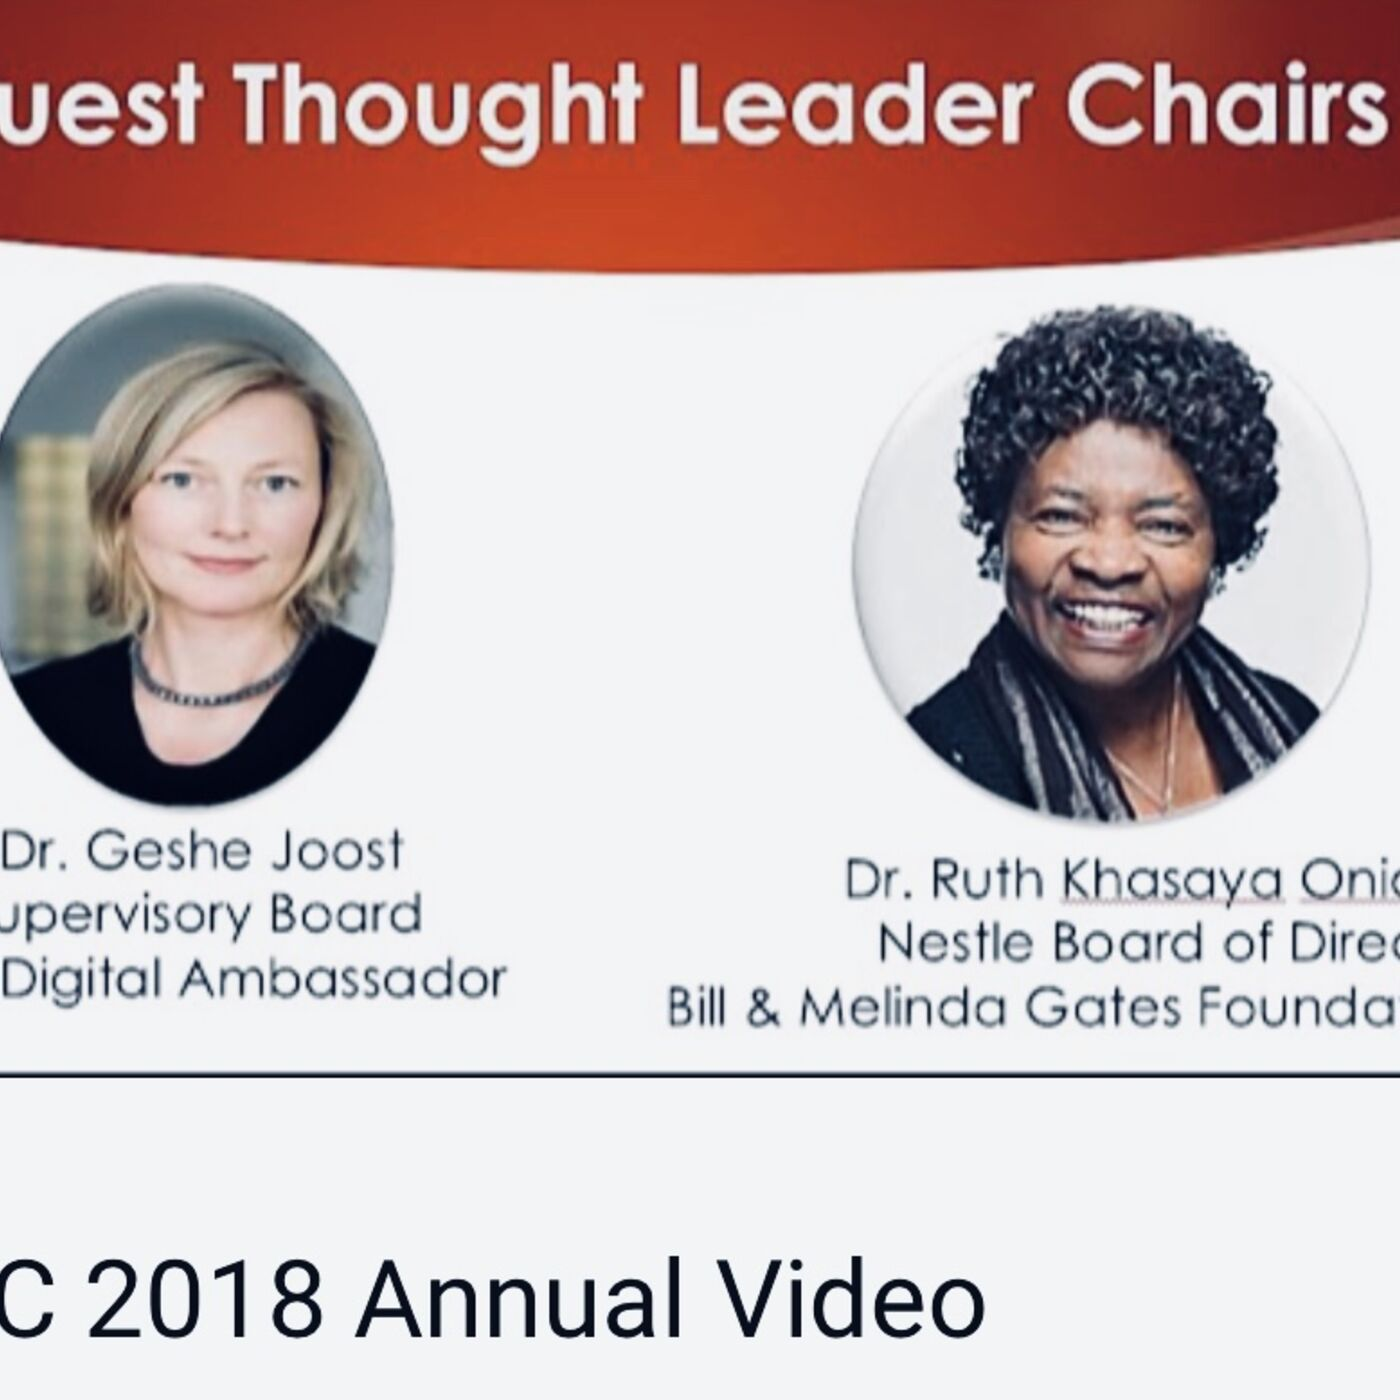 Guest Board Chairs, SAP's Supervisory Board Member Dr. Geshe Joost and Nestles Dr. Ruth Oniang'o